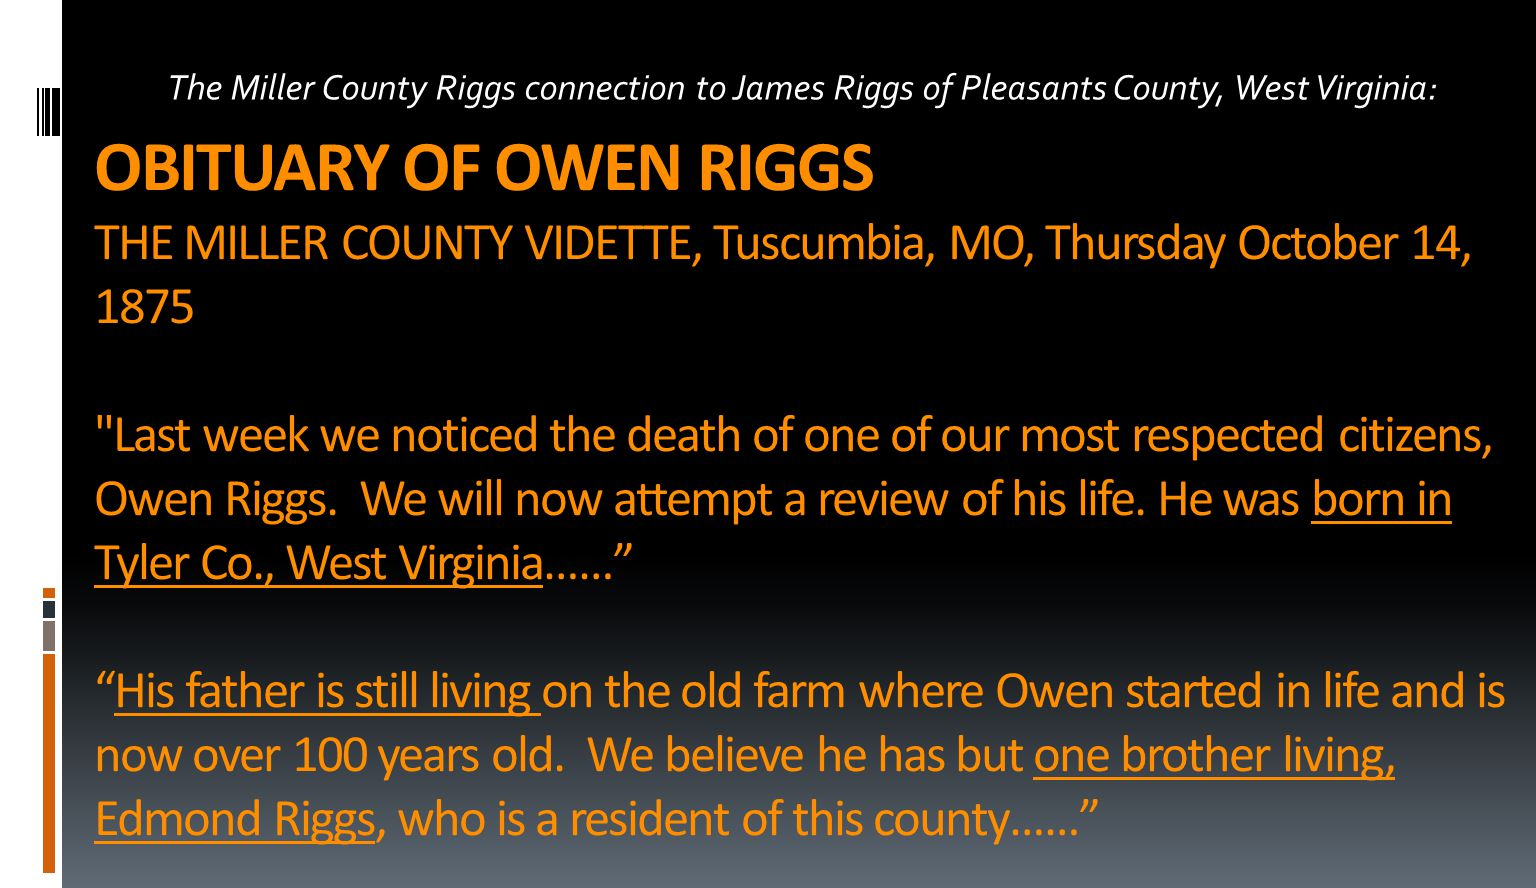 OBITUARY OF OWEN RIGGS THE MILLER COUNTY VIDETTE, Tuscumbia, MO, Thursday October 14, 1875 Last week we noticed the death of one of our most respected citizens, Owen Riggs.